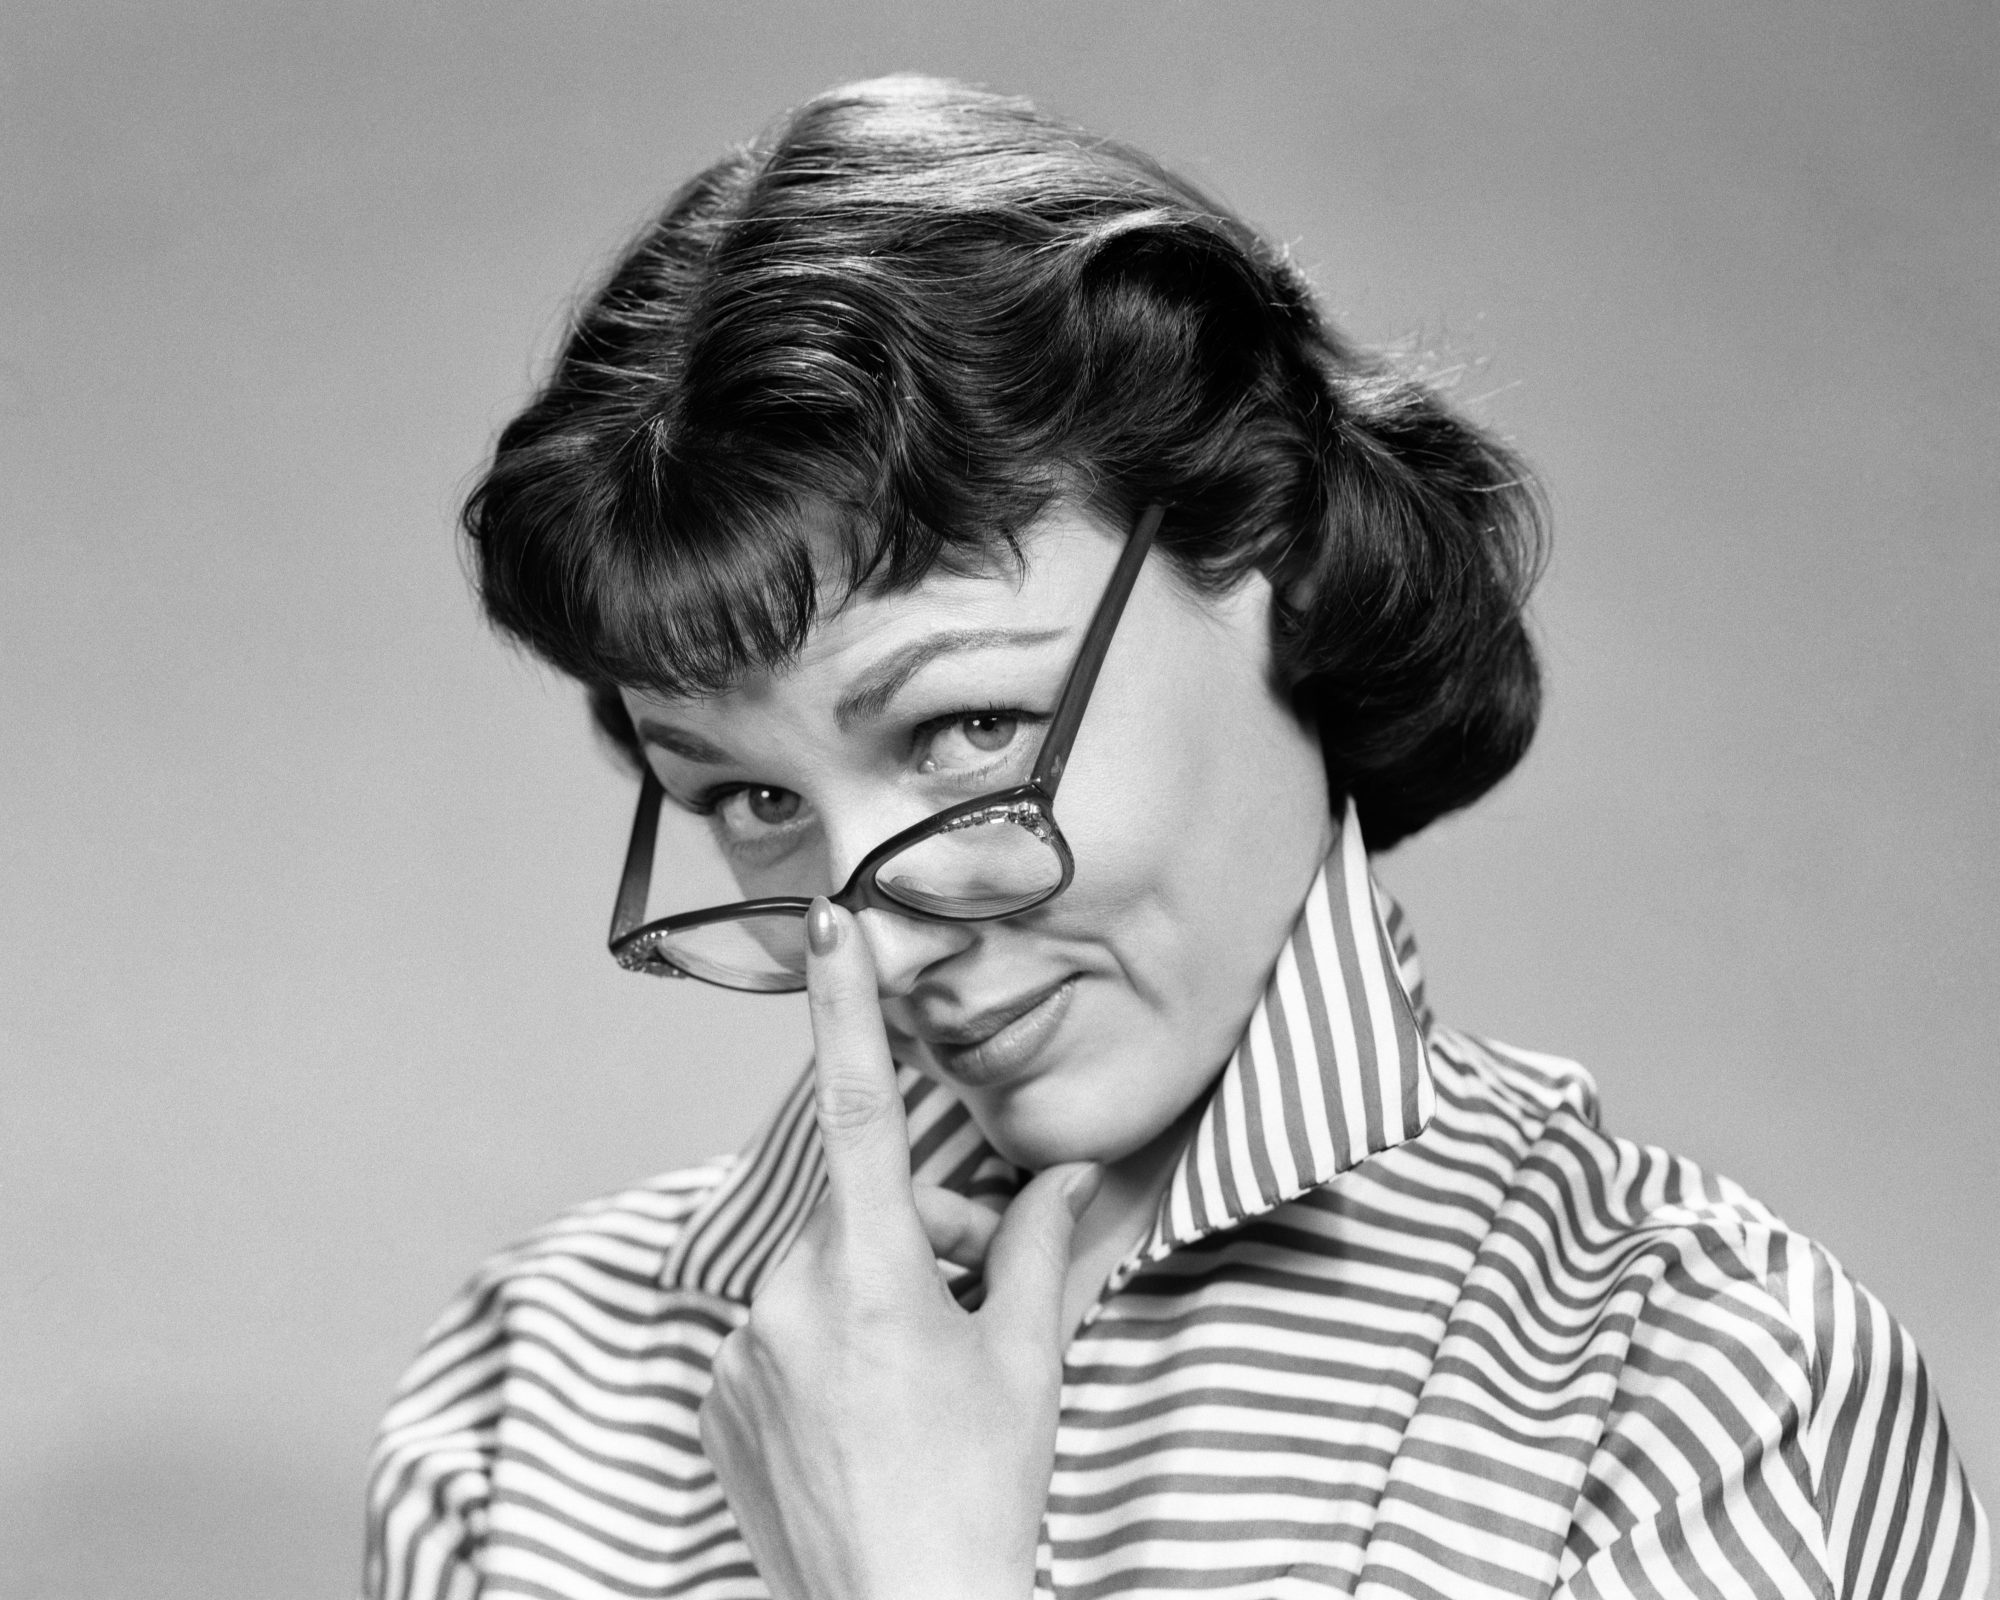 Woman Pushing Up Glasses